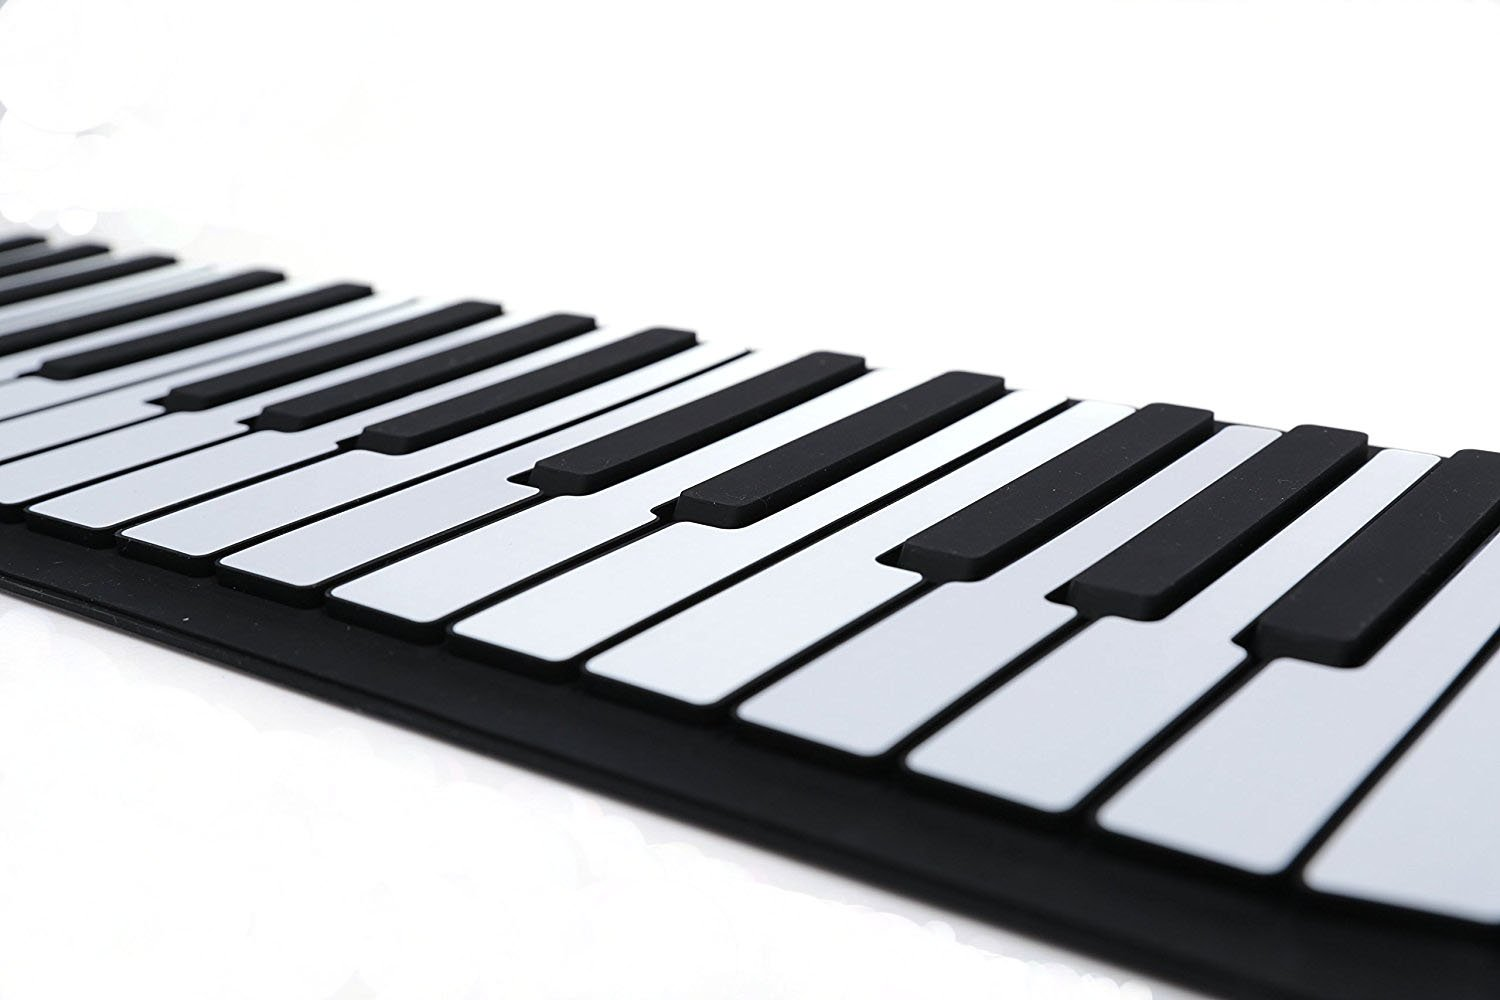 iLearnMusic Roll Up Piano, Premium Grade Silicone, Built-in Speakers - Educational Piano (61 Keys (F61)) by iLearnMusic (Image #6)